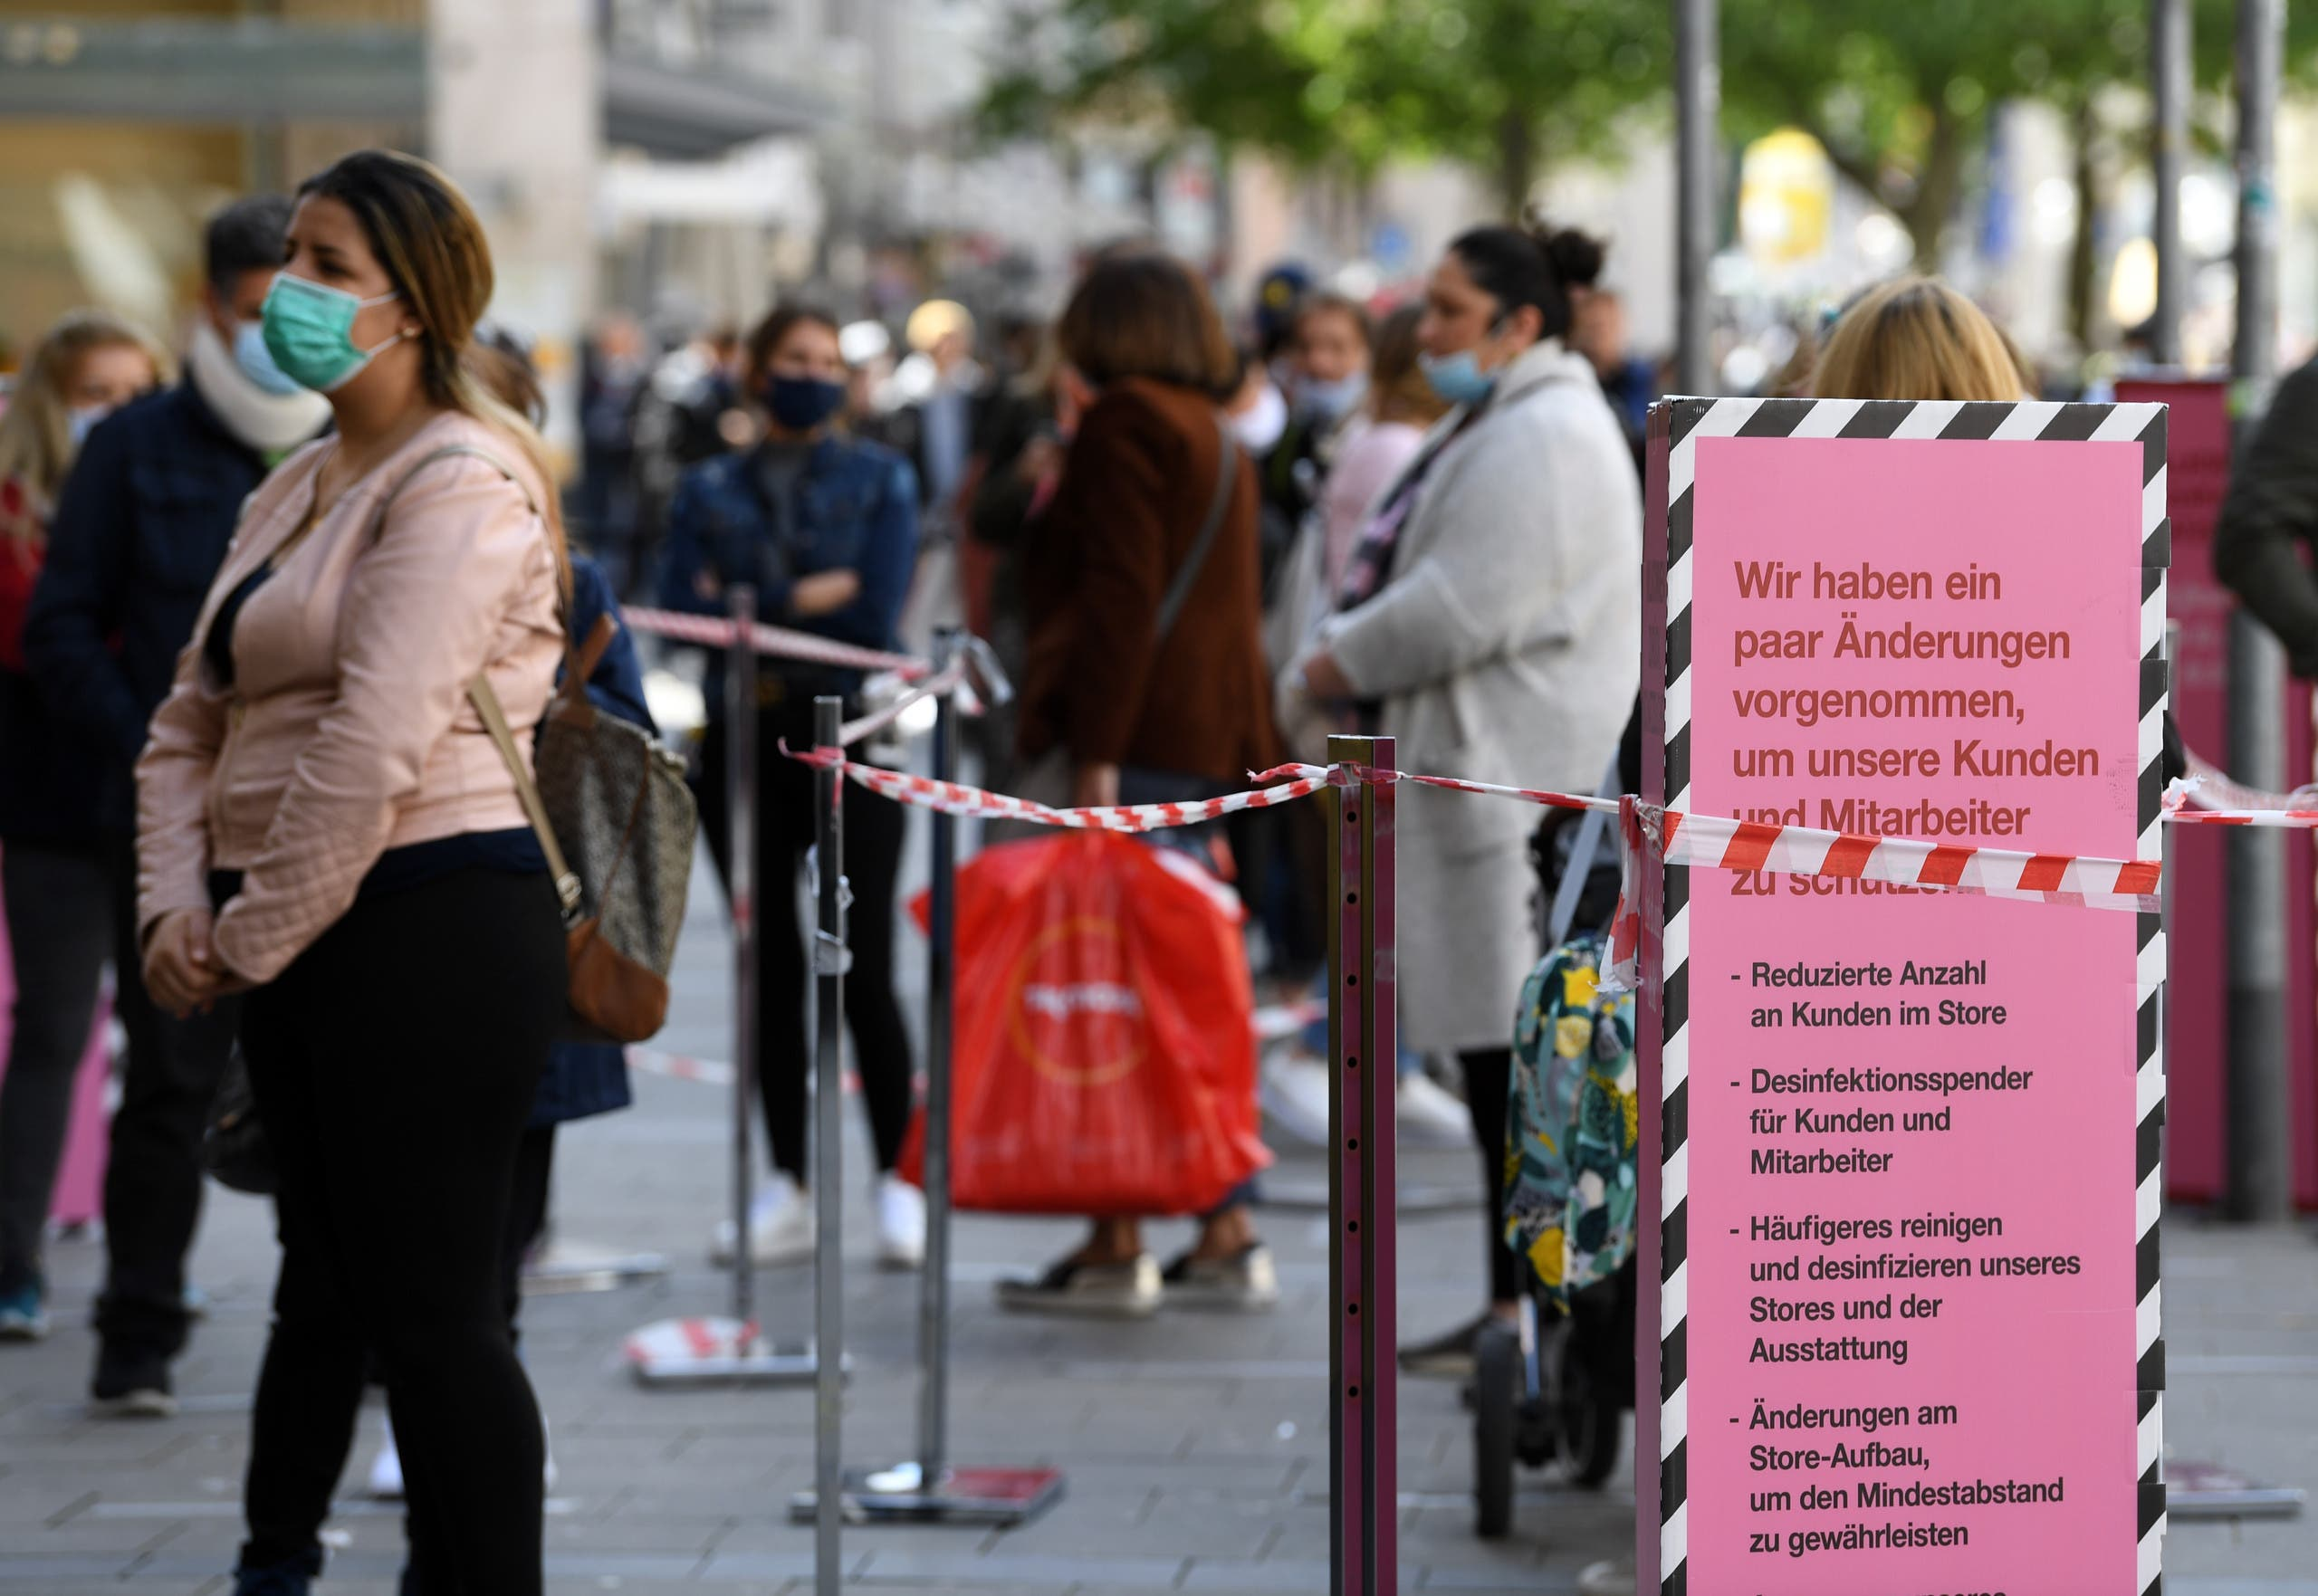 Customers wait in line after the coronavirus lockdown was eased around Germany, in Munich, Germany, May 12, 2020. (Reuters)